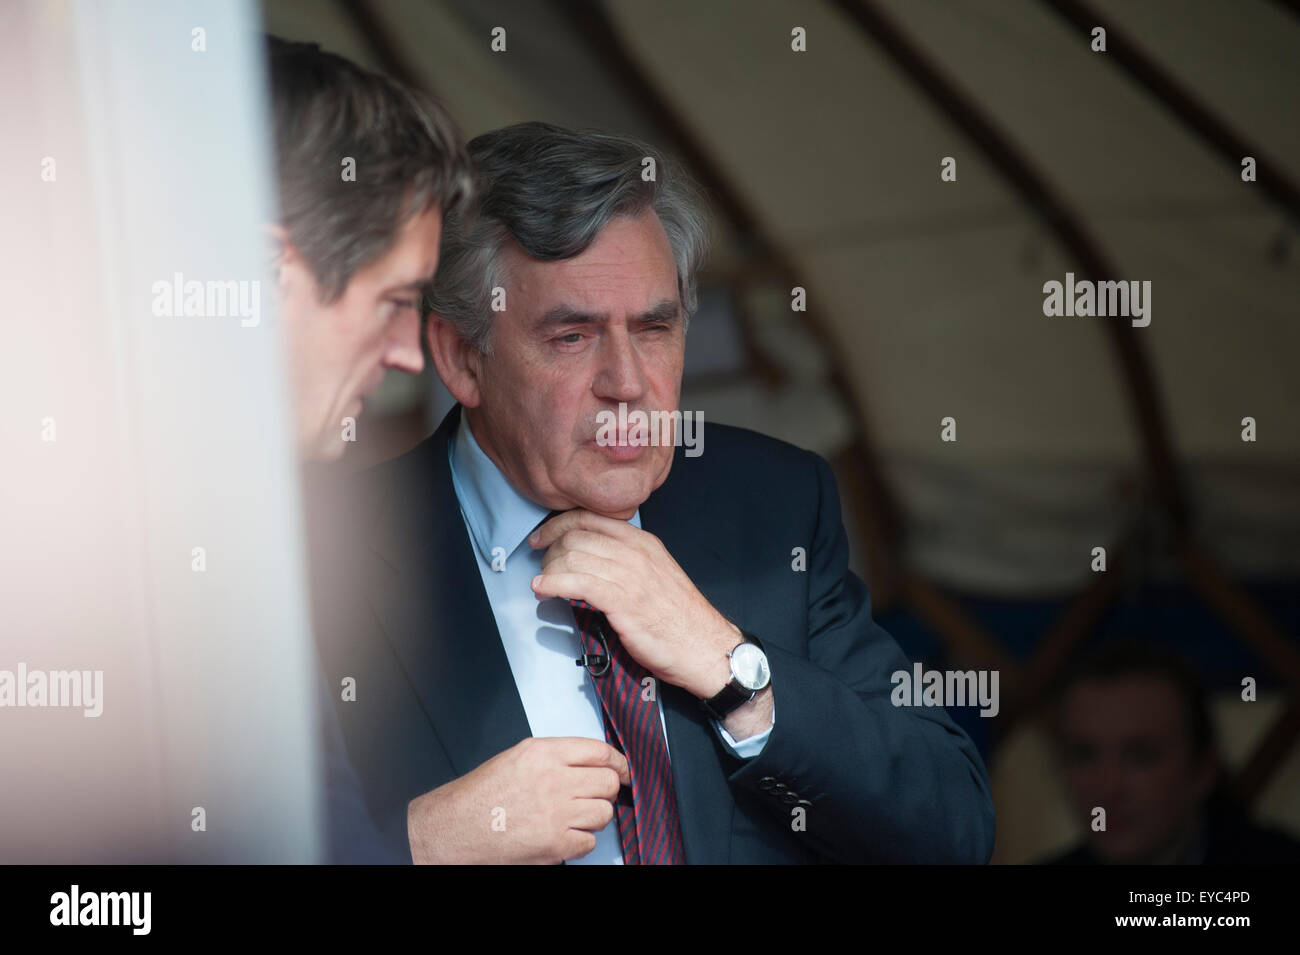 Former British Prime Minister, Gordon Brown, appearing at the Edinburgh International Book Festival. - Stock Image